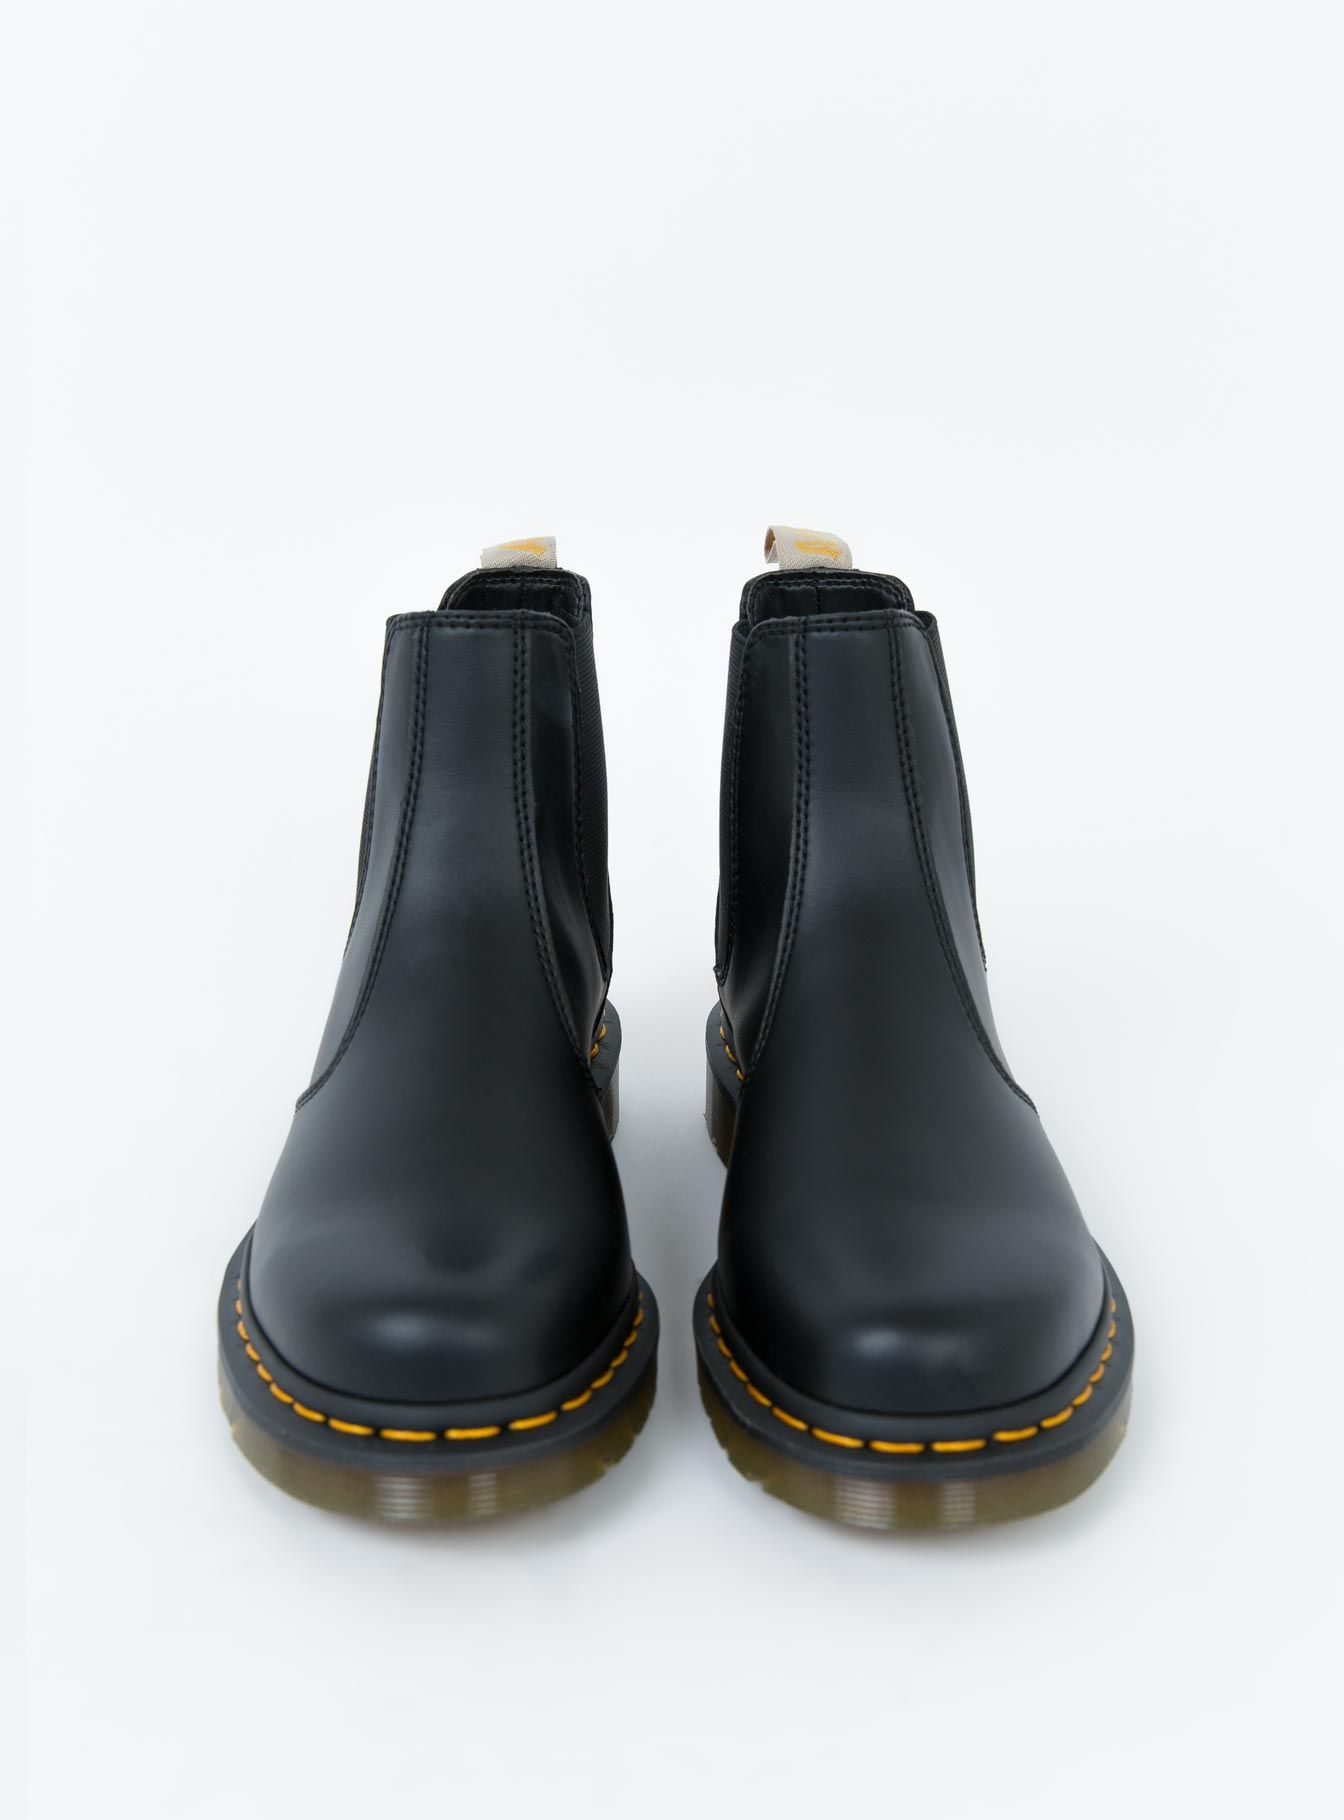 Boots, Chelsea boots, Trendy shoes